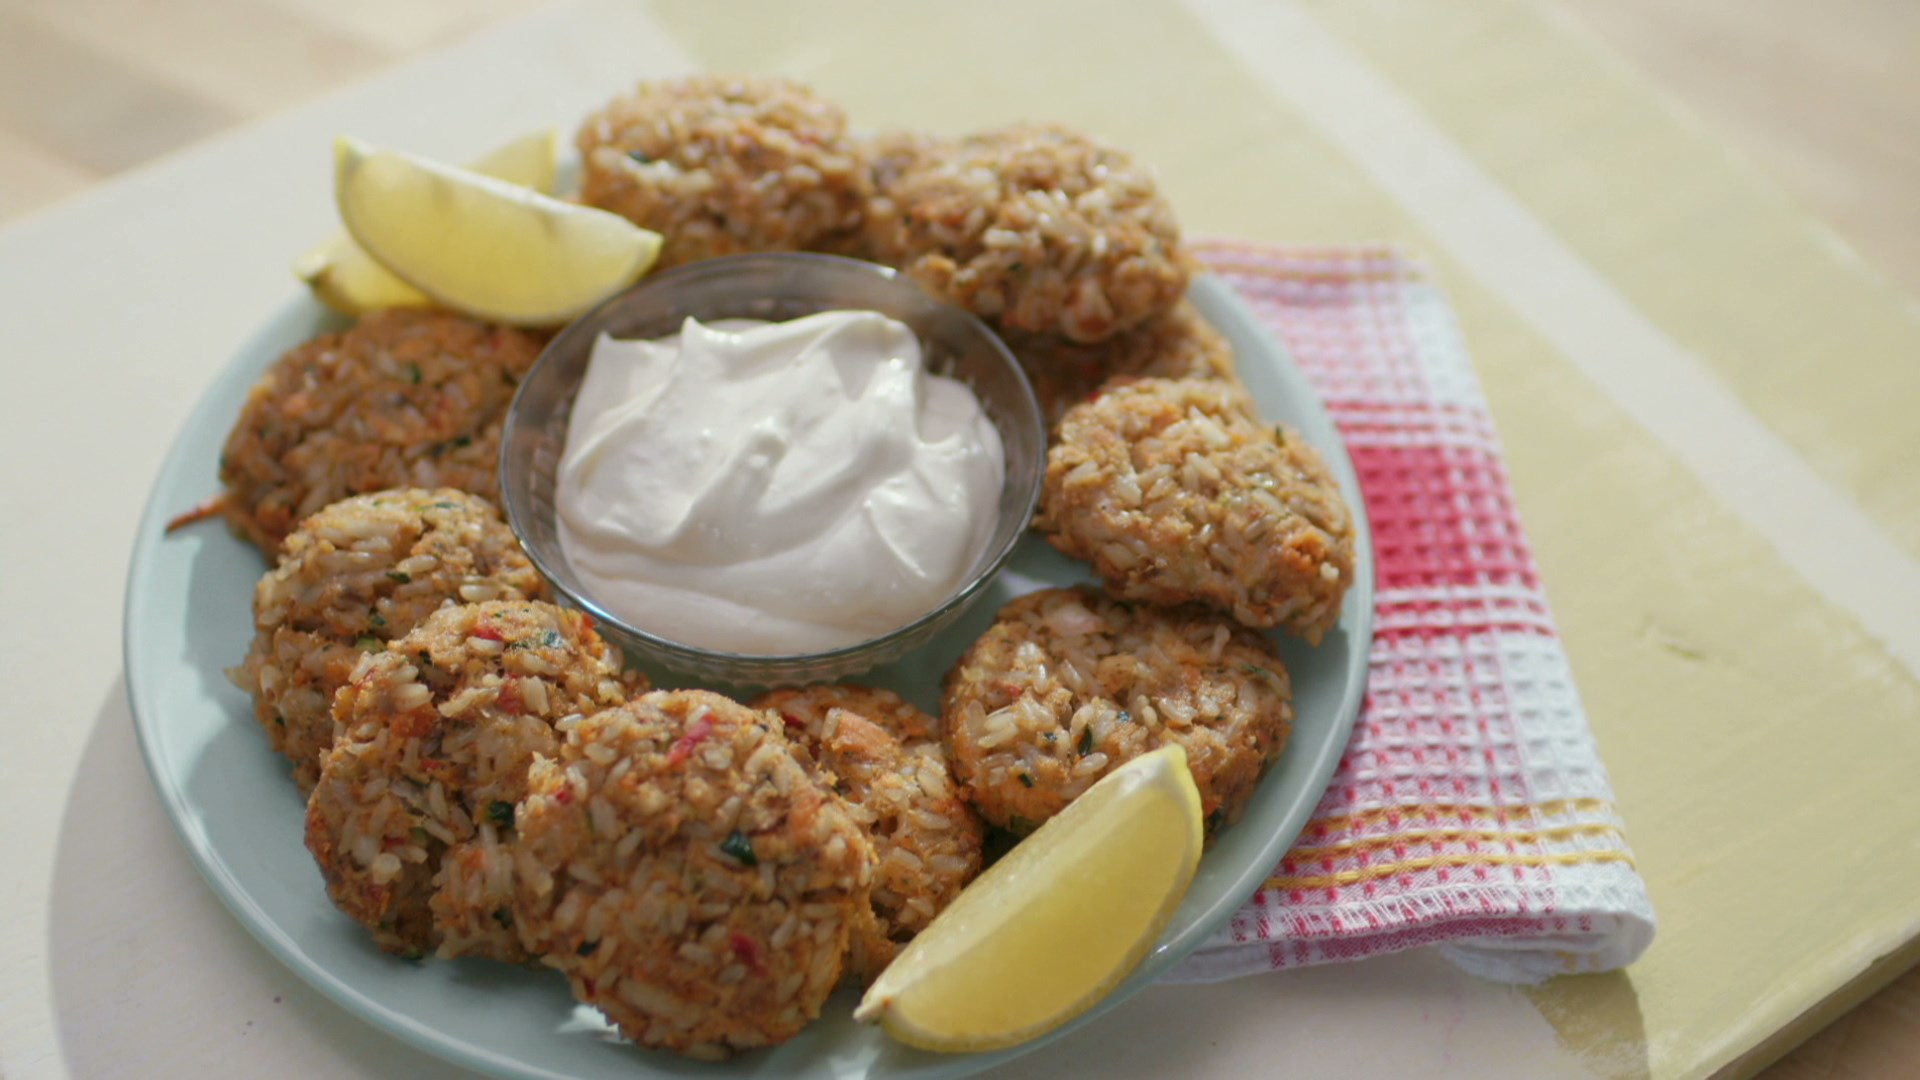 croquettes de riz au saumon cuisine fut e parents press s